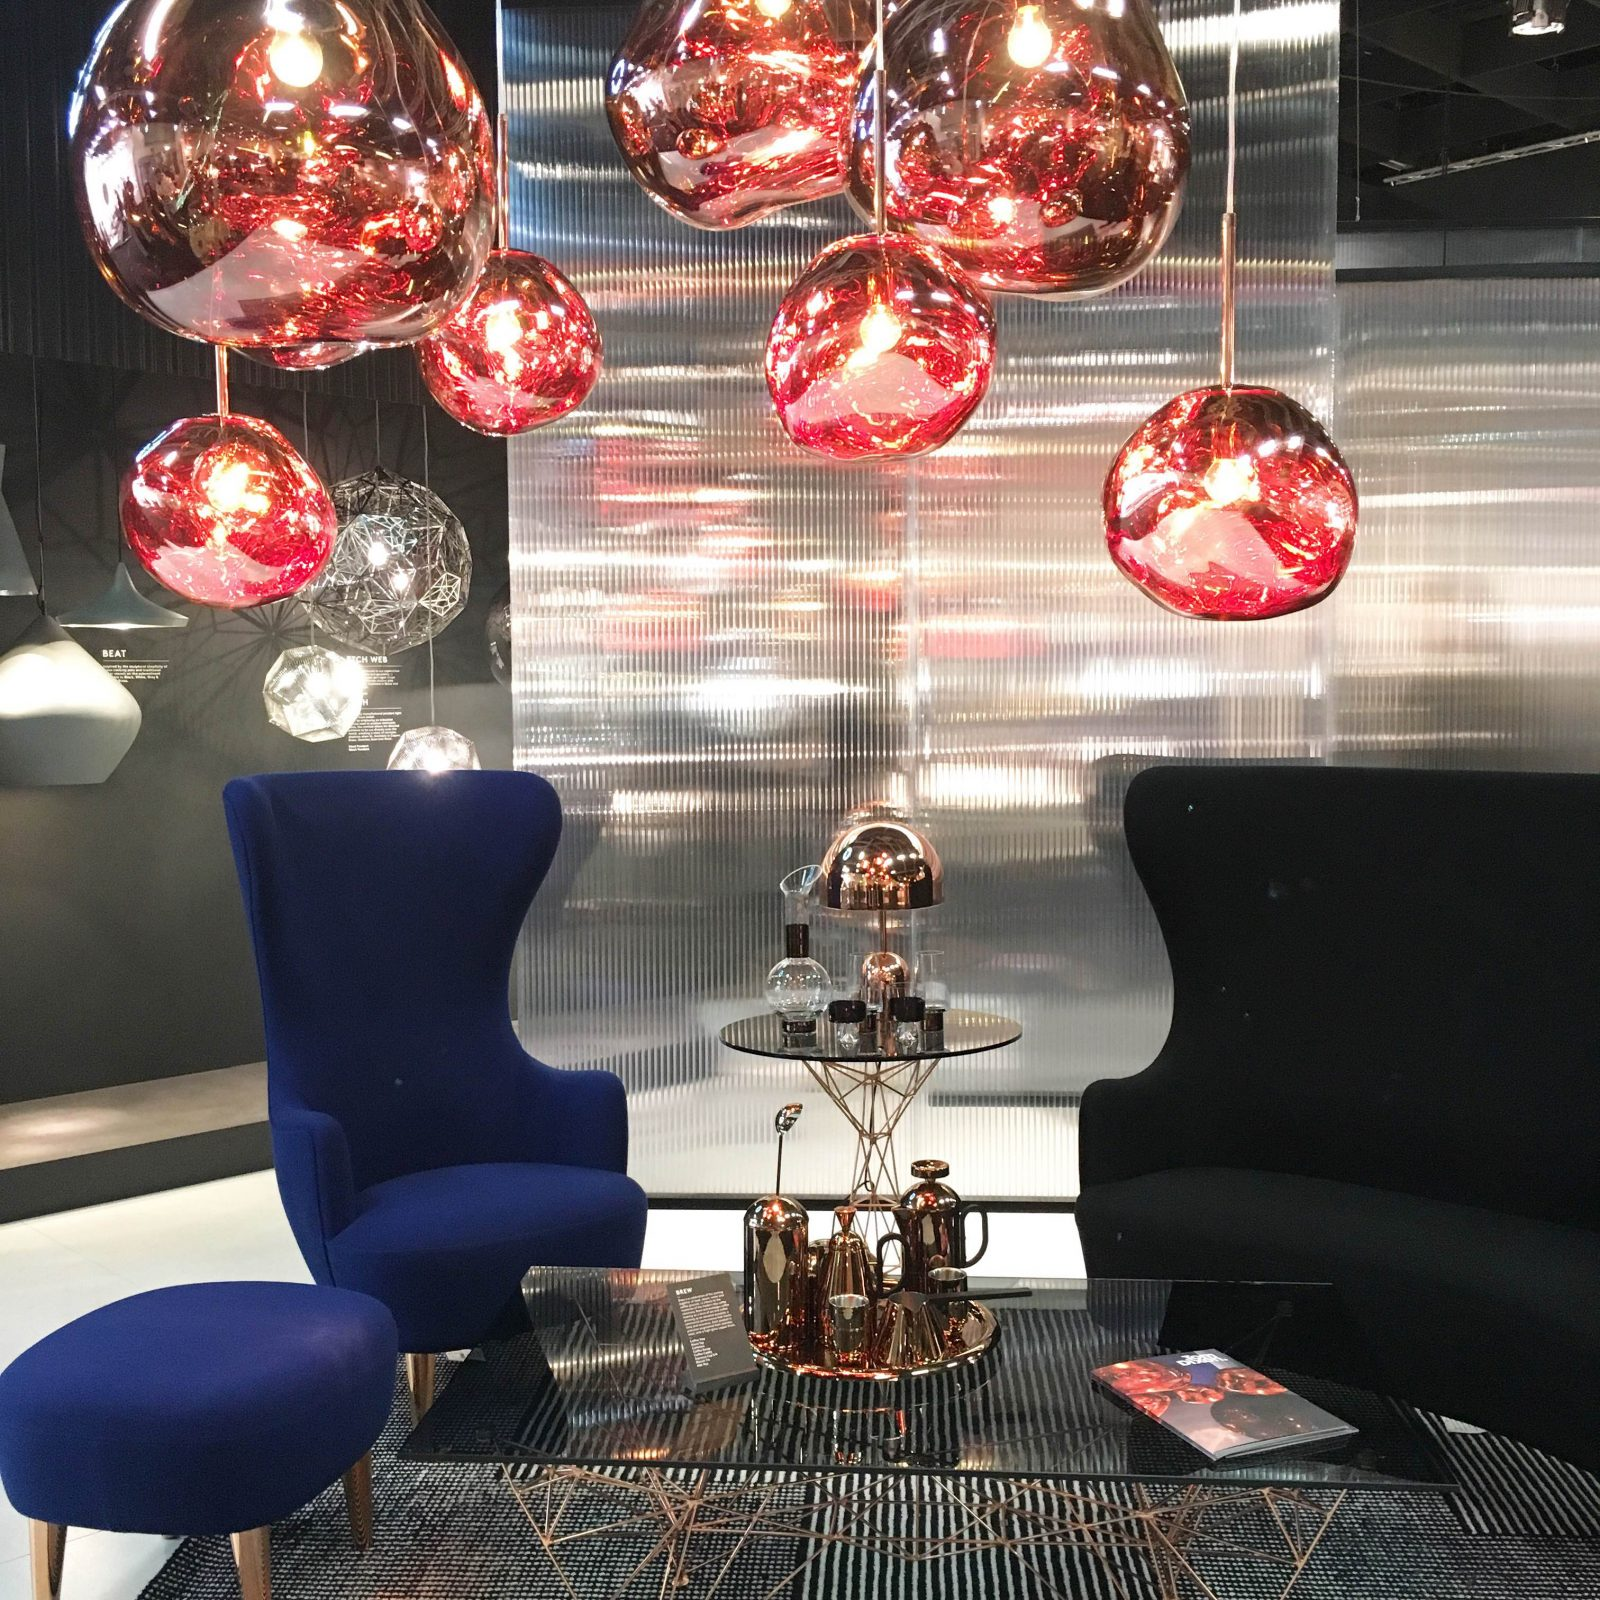 IMM 2016 Trendreport: Tom Dixon